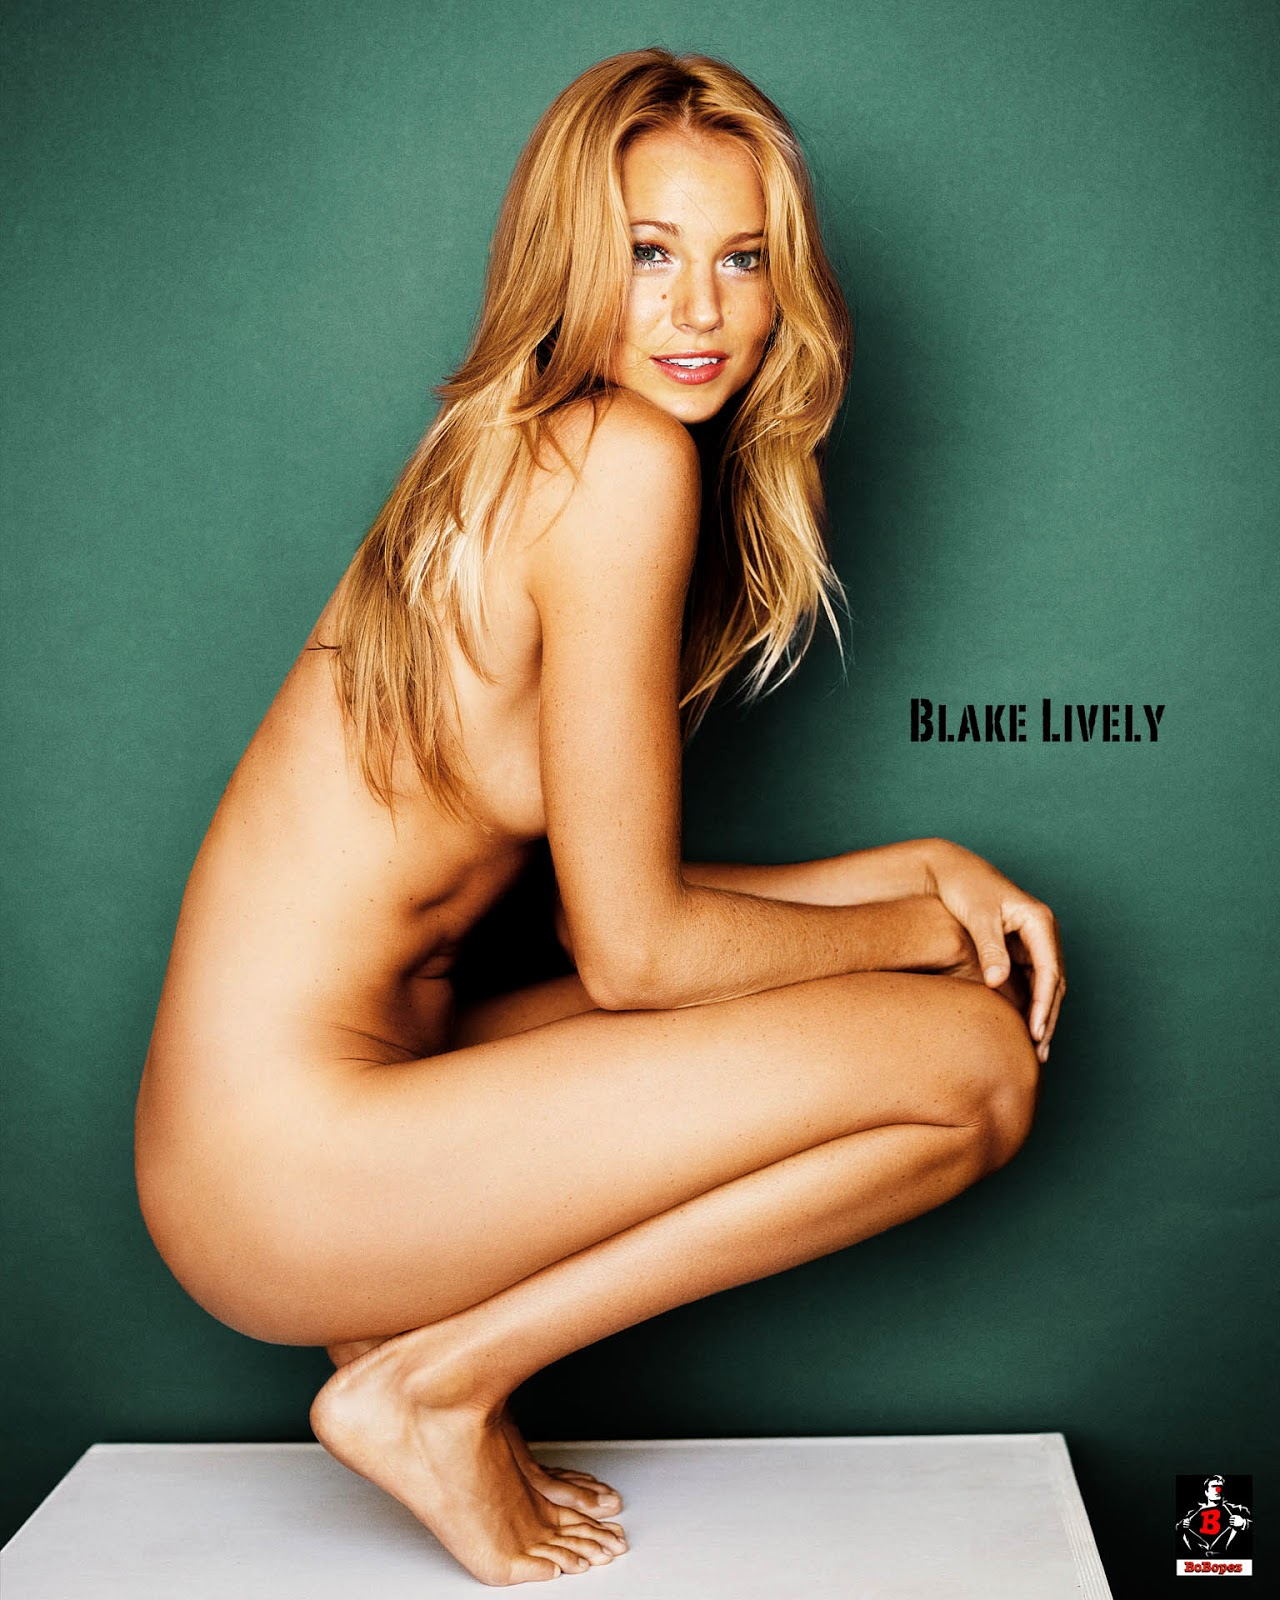 blake-lively-nude